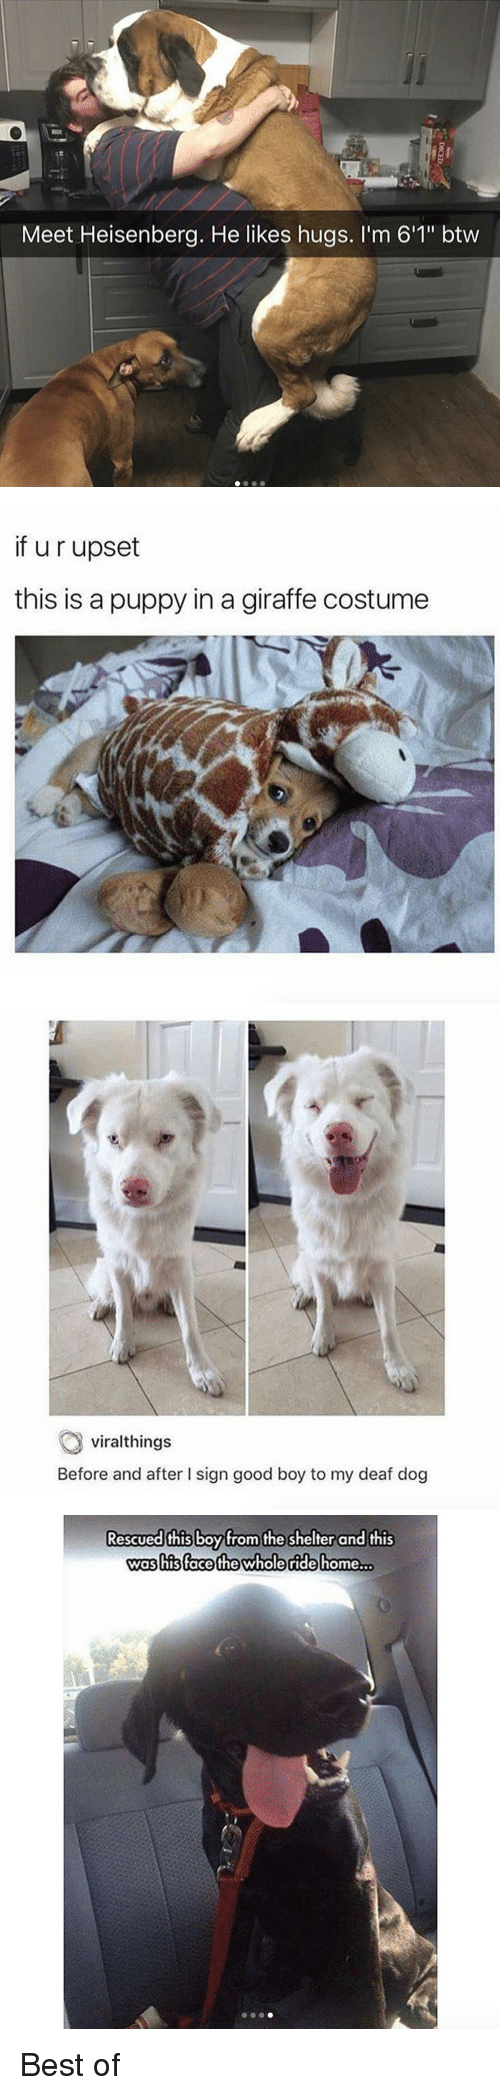 """Best, Giraffe, and Good: Meet Heisenberg. He likes hugs. I'm 6'1"""" btw   if u r upset  this is a puppy in a giraffe costume   viralthings  Before and after I sign good boy to my deaf dog   Rescued this boyfrom the shelter and this  was his (face the whole ride home  .. <p>Best of</p>"""